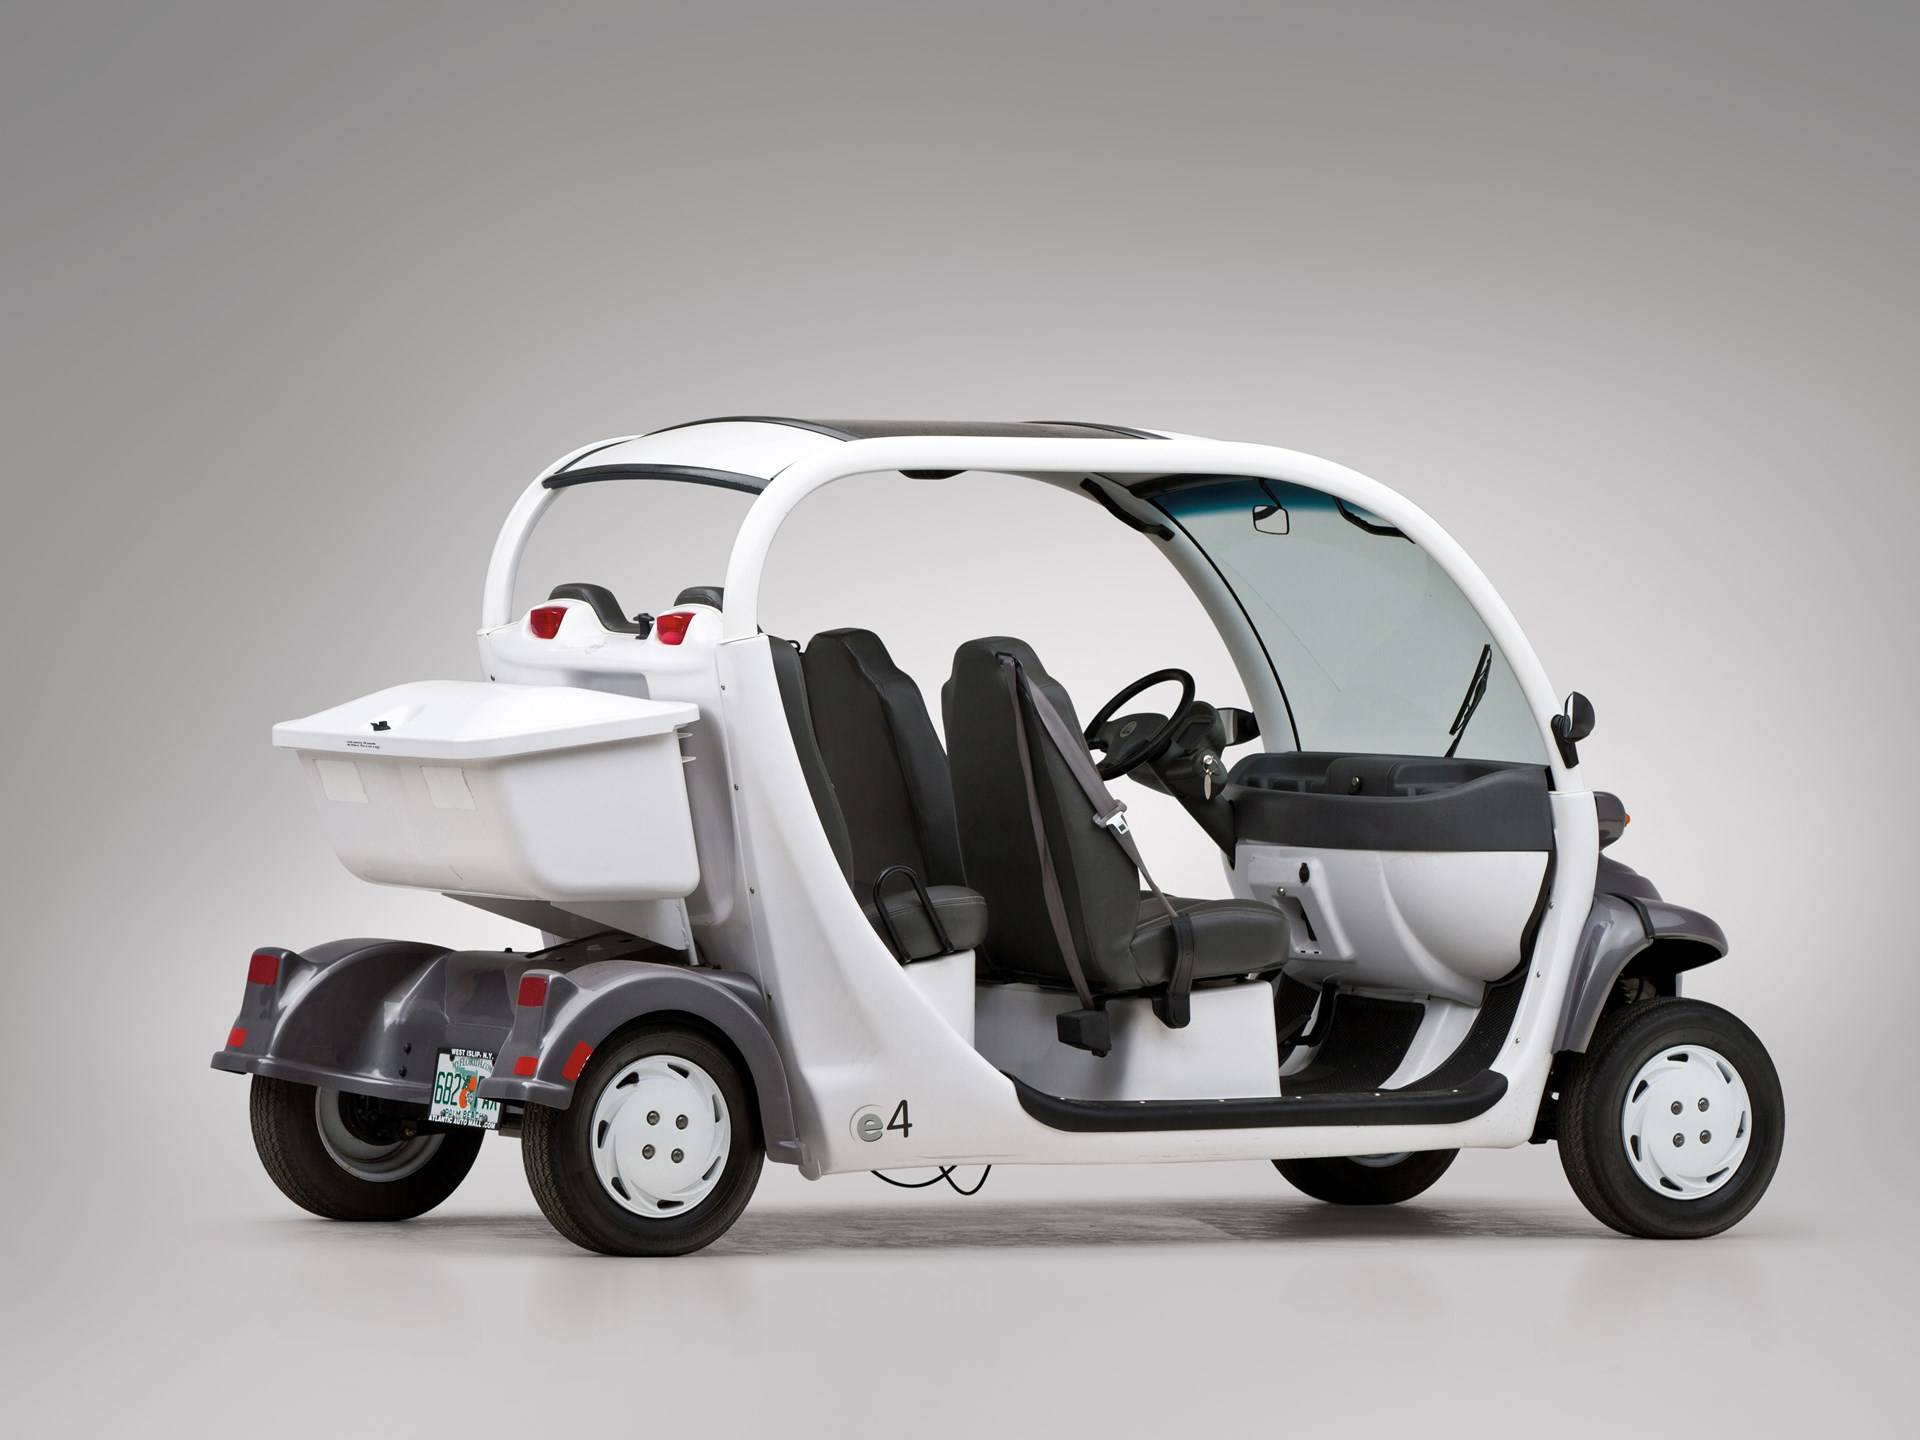 2006 Gem E4 Neighborhood Electric Vehicle